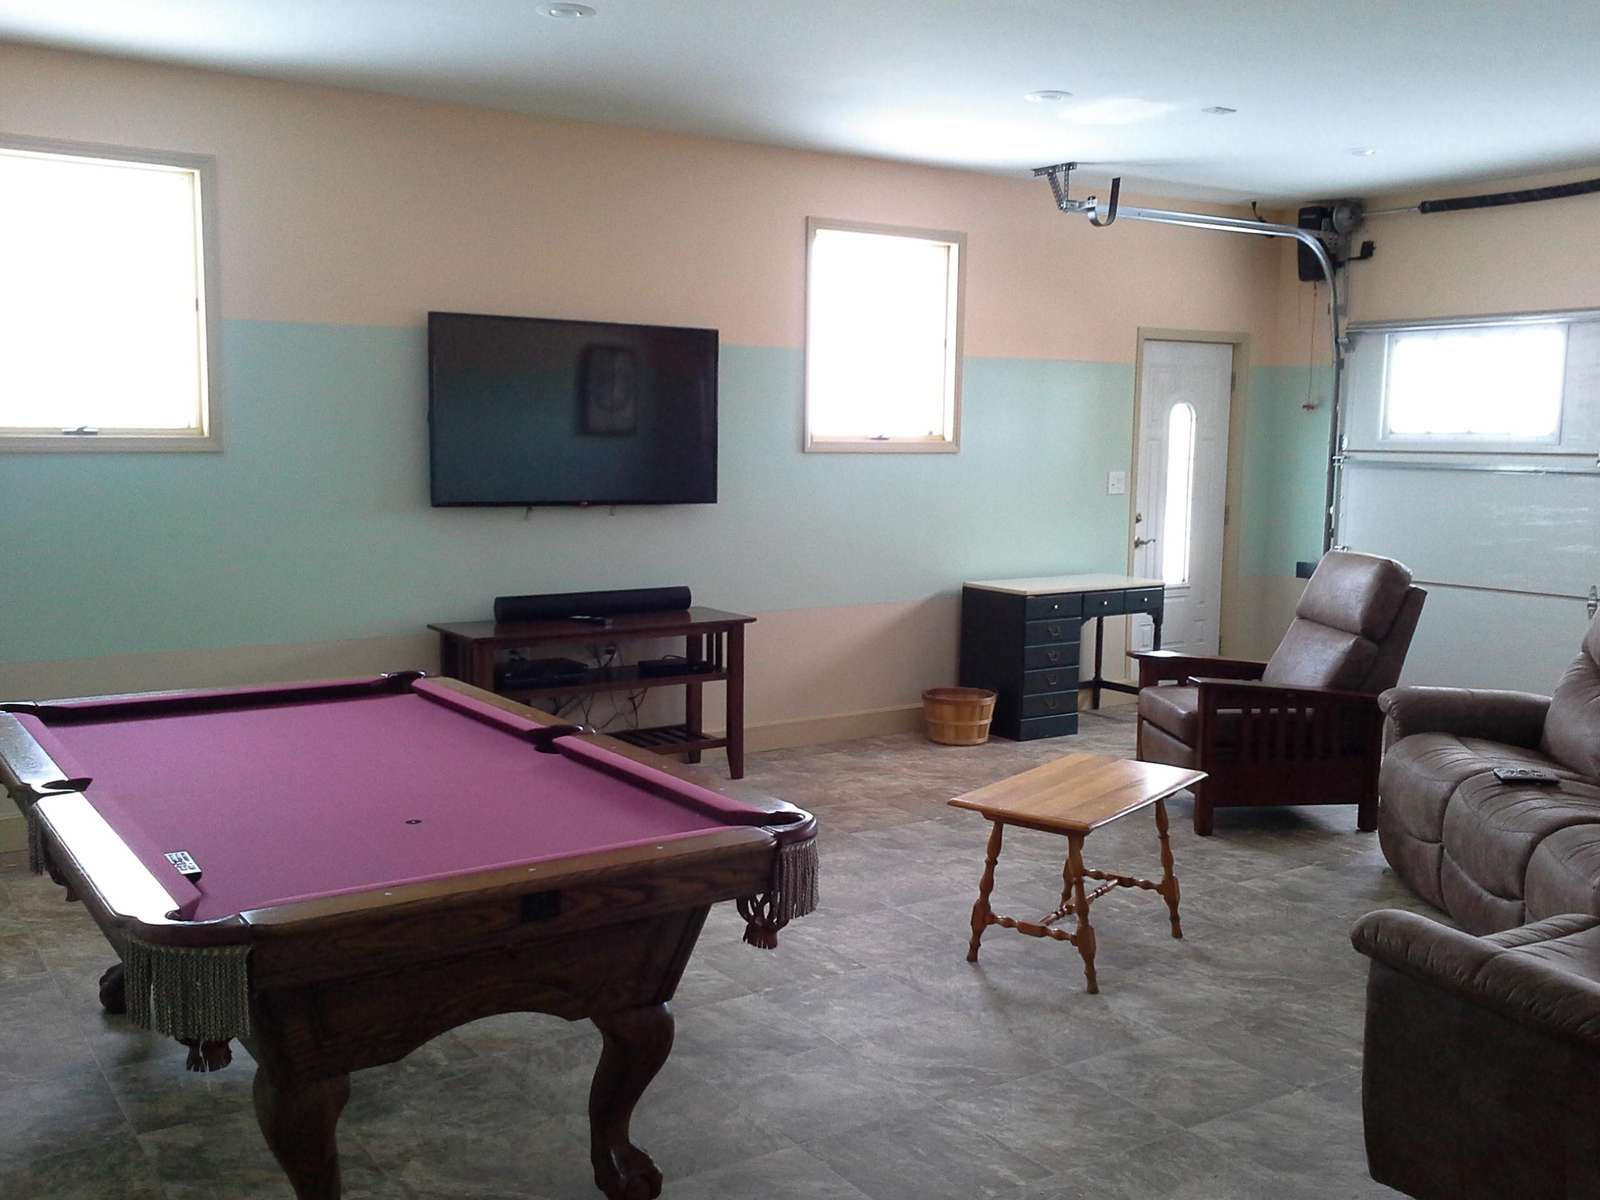 Rec room with TV, pool and foosball